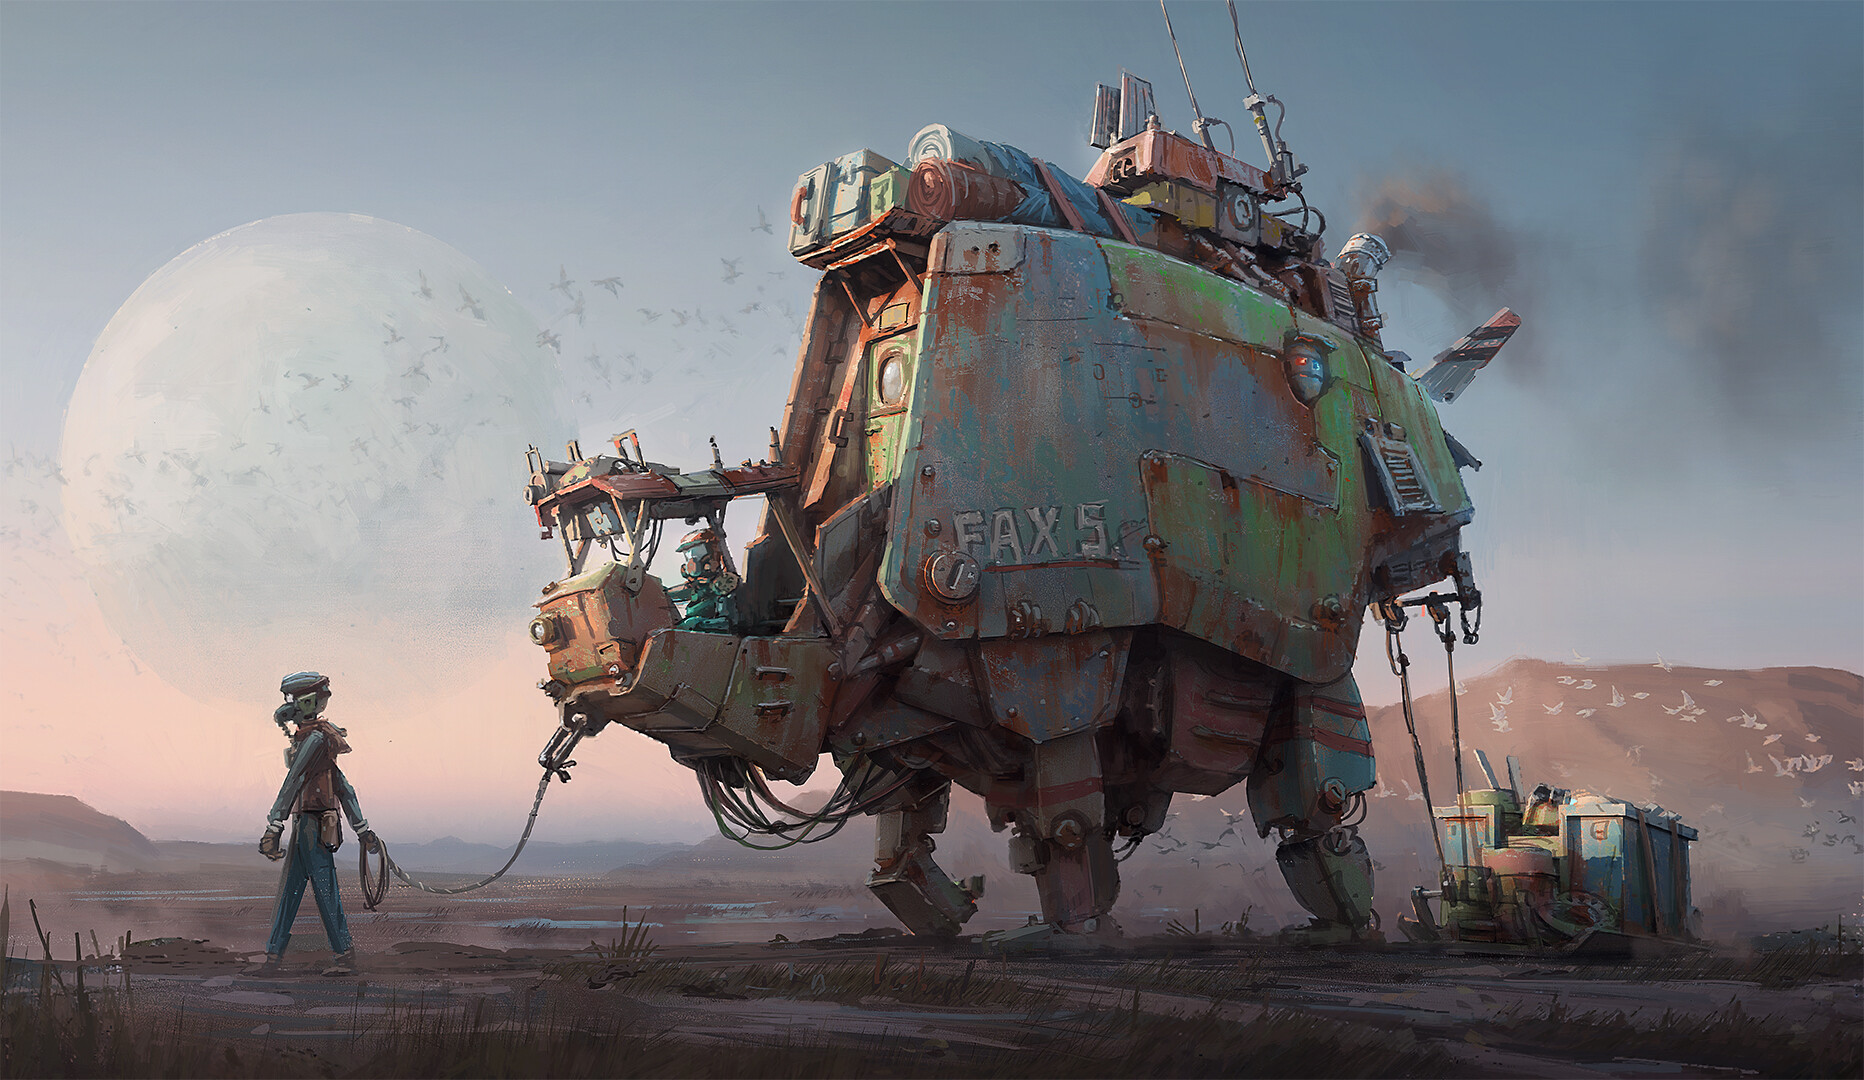 The Science Fiction Art of Hamish Frater